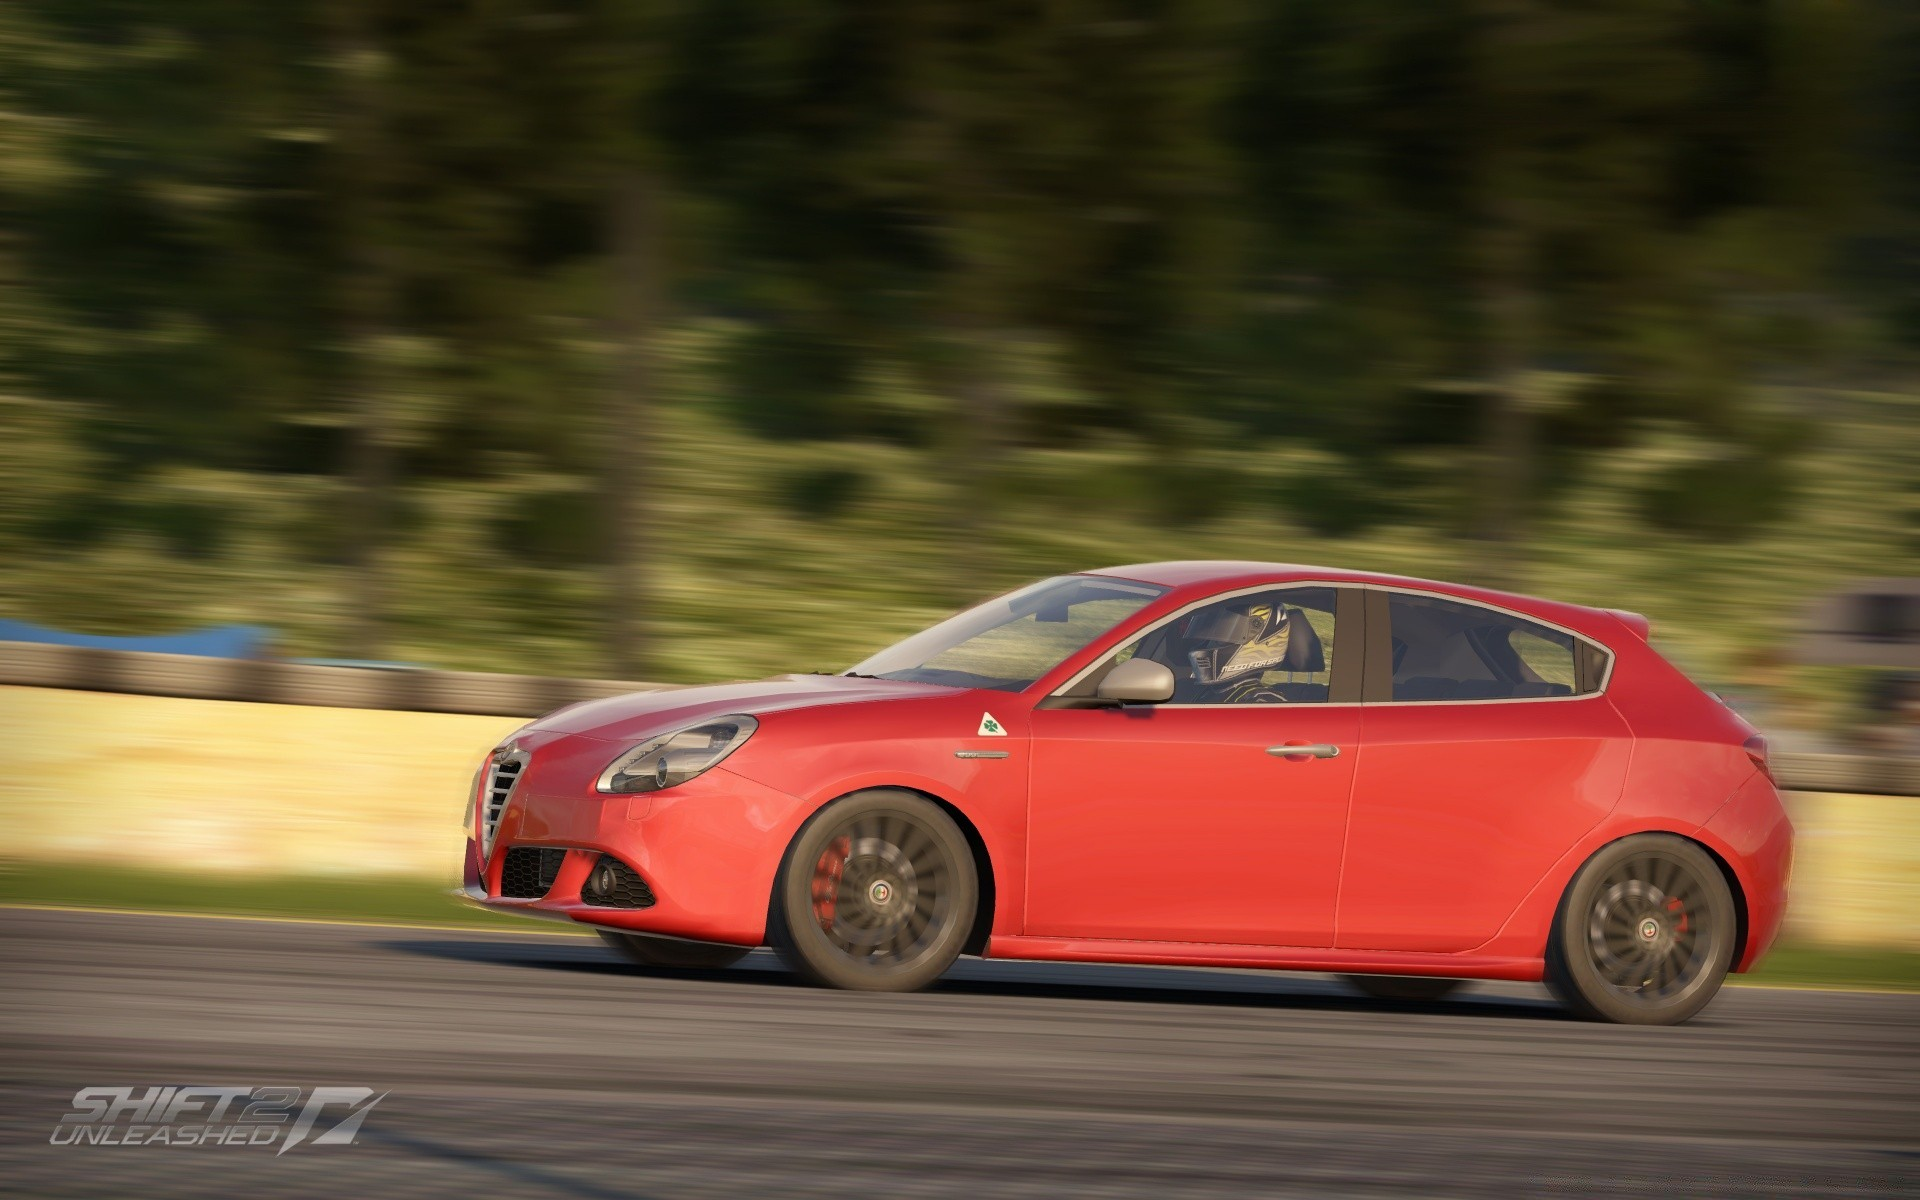 Nfs Shift 2 Alfa Romeo Giulietta Qv Android Wallpapers